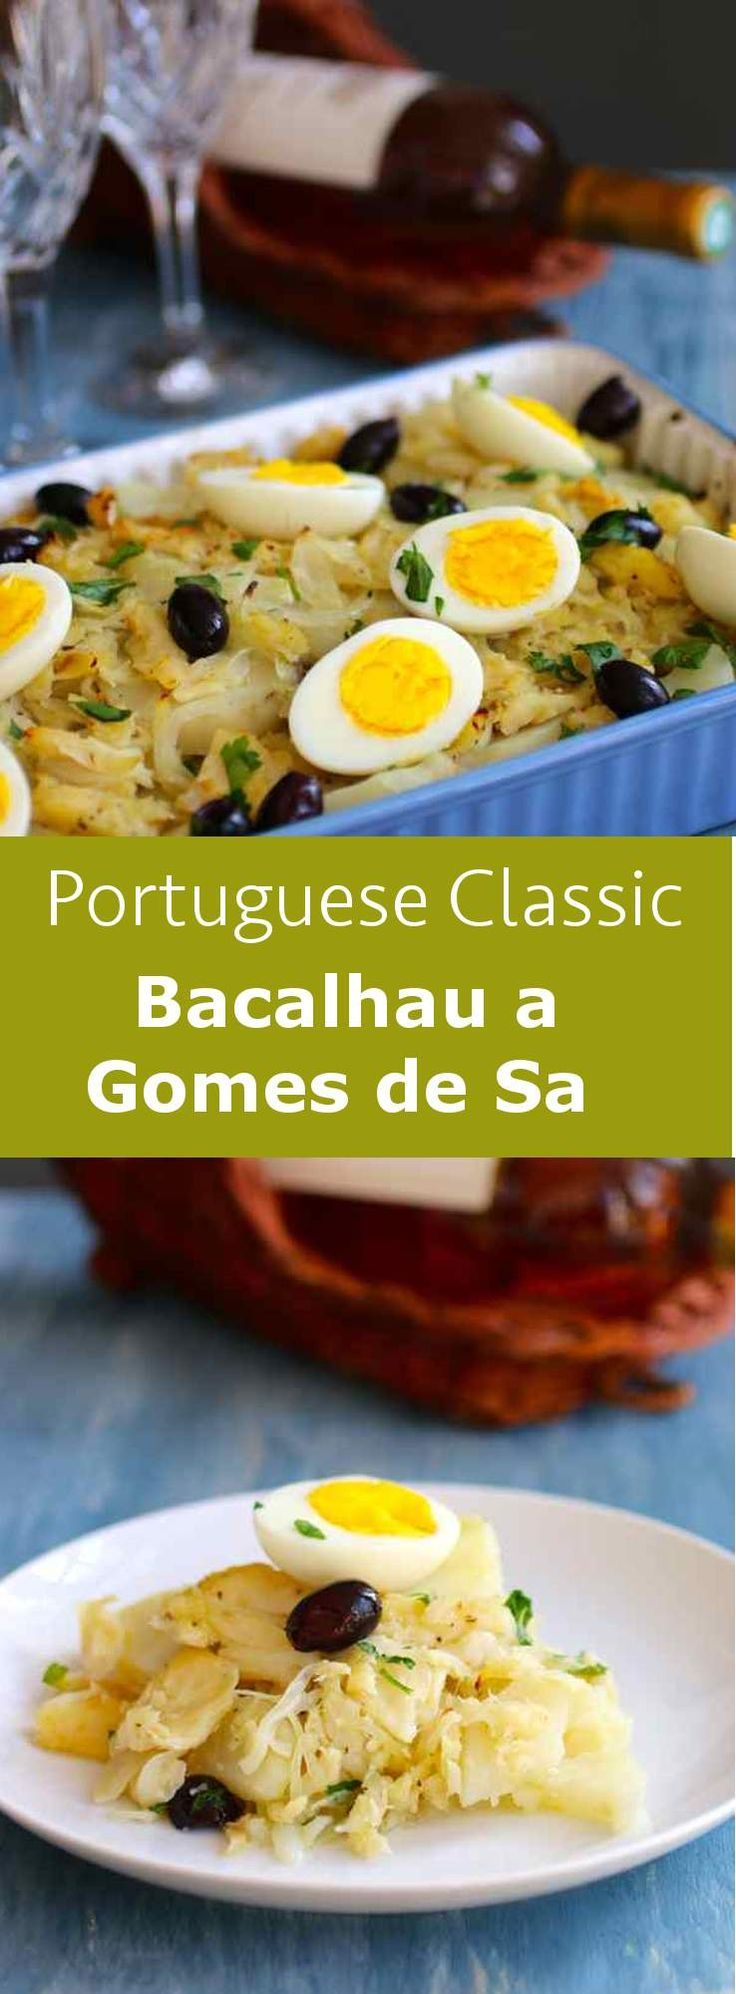 Bacalhau a Gomes de Sa is one of the most famous salted cod fish recipes in…